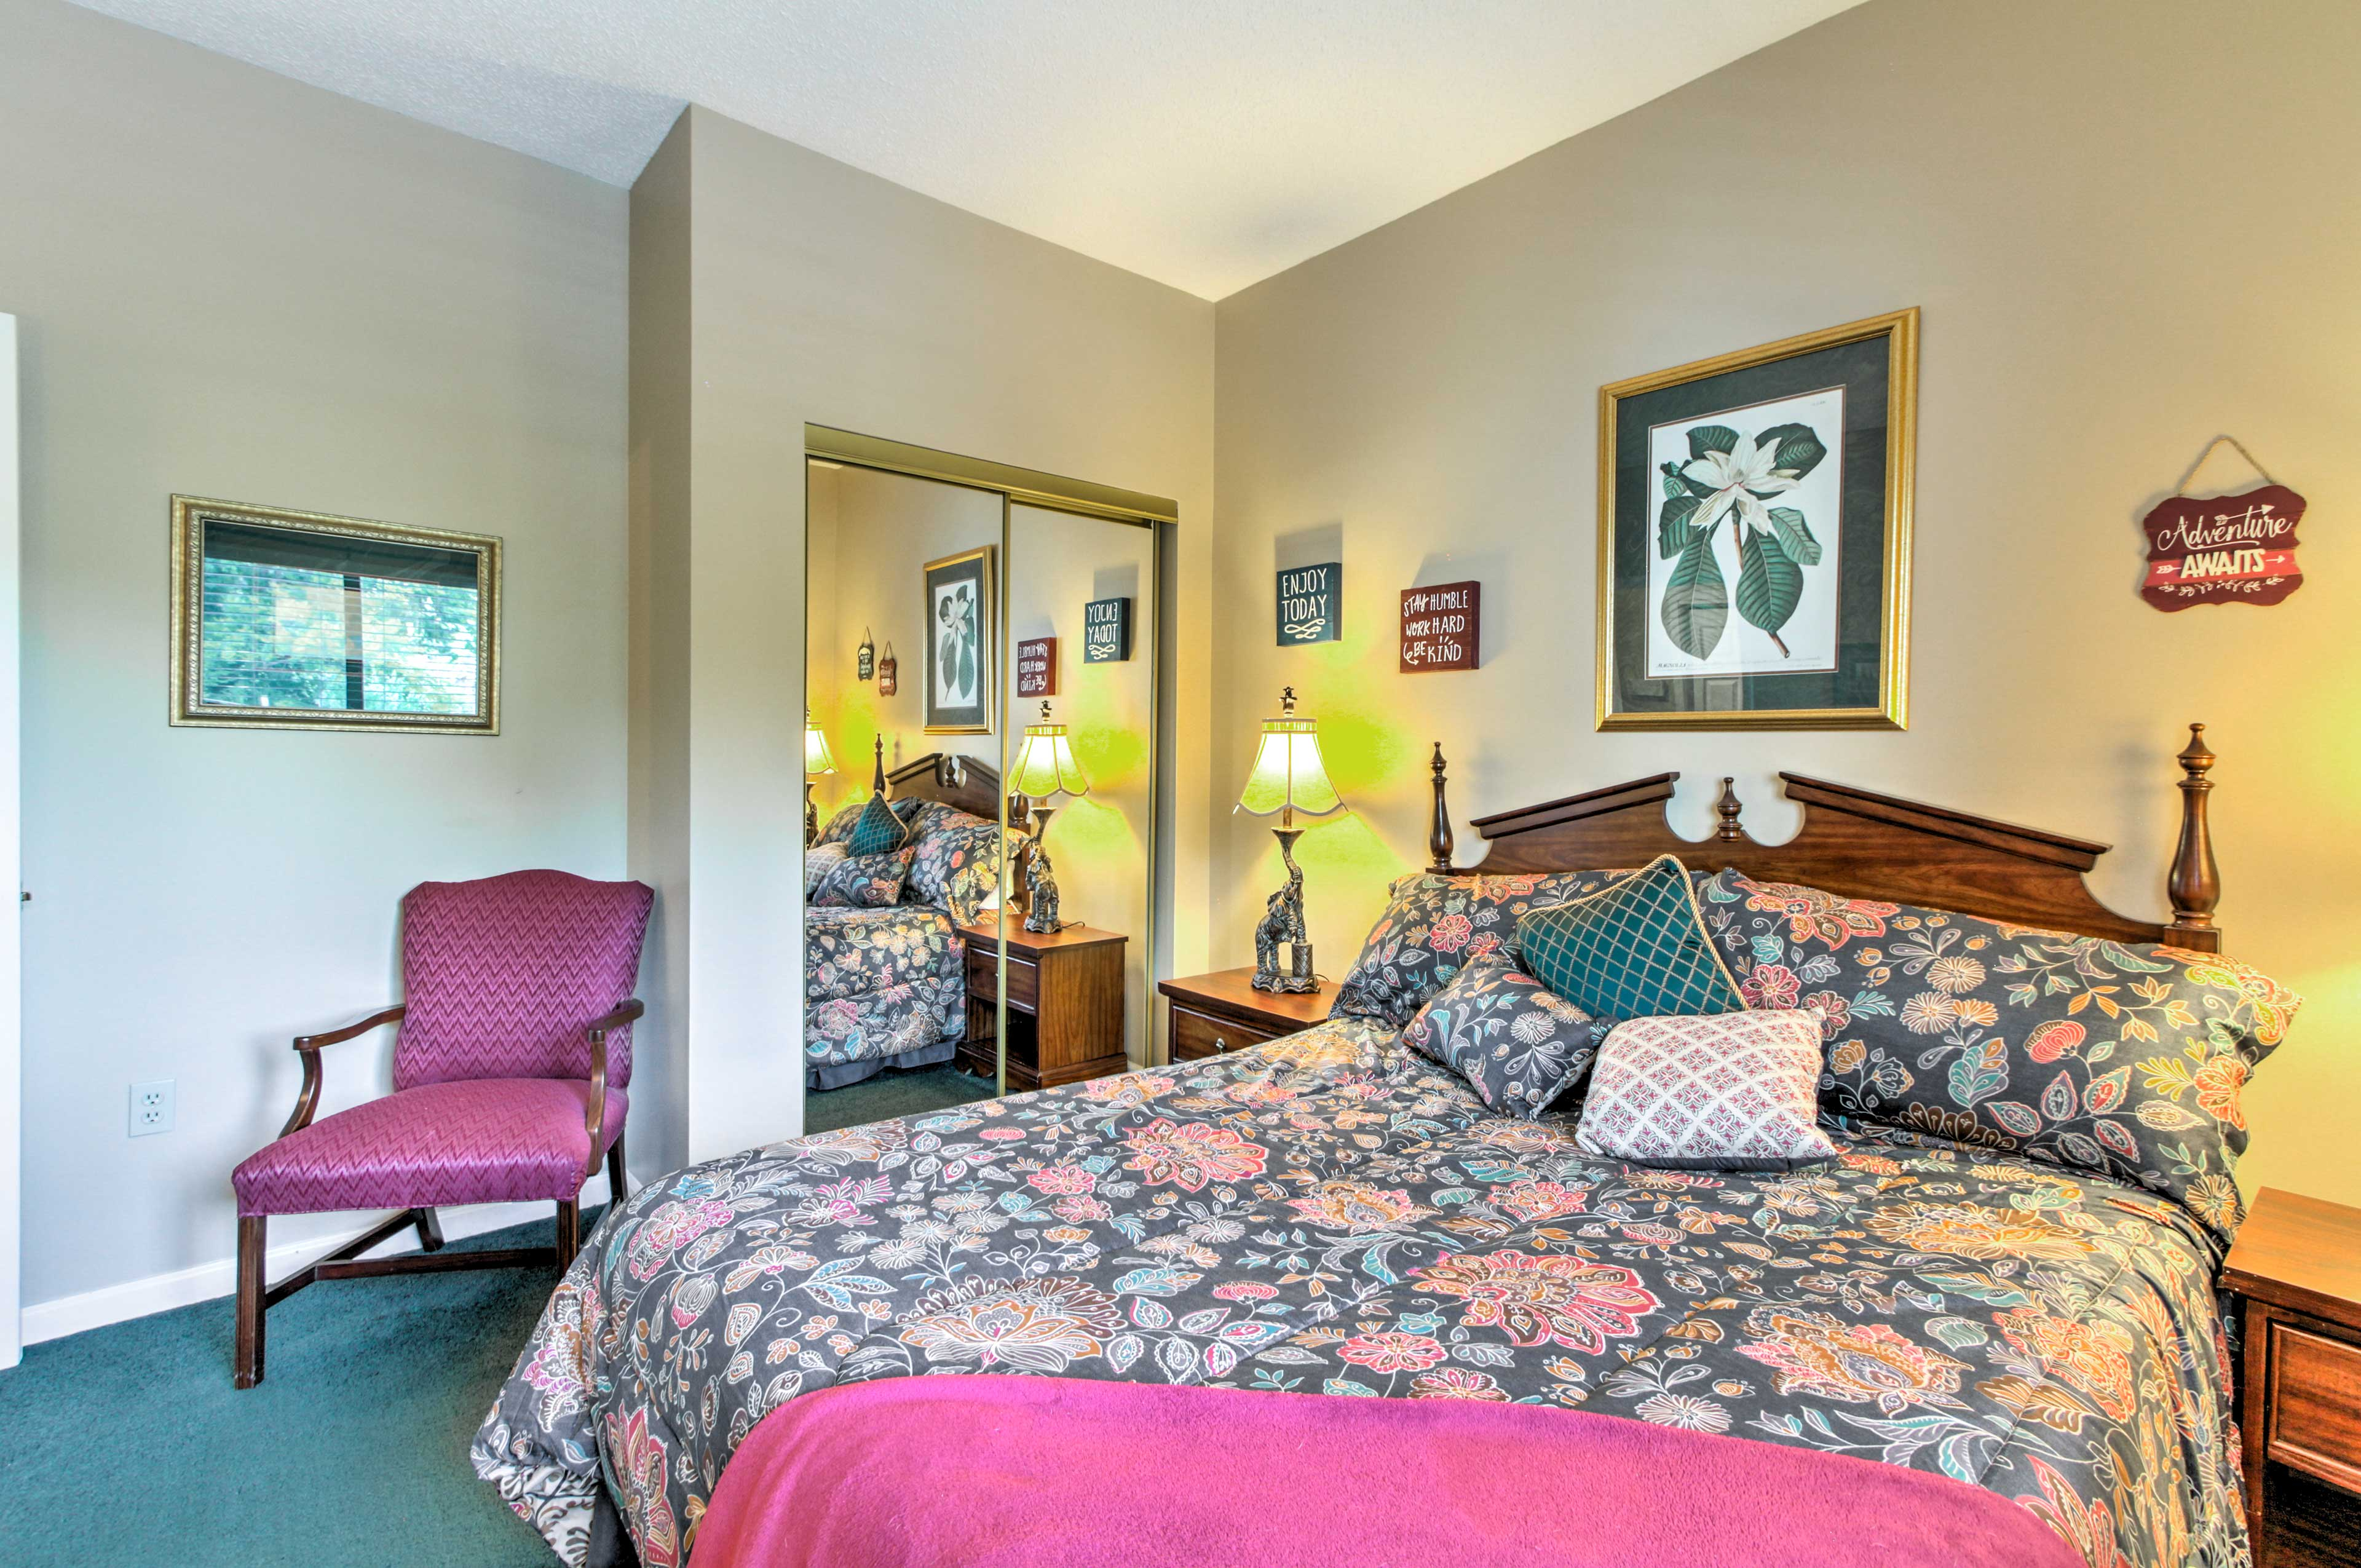 The guest bedroom offers a queen-sized bed.